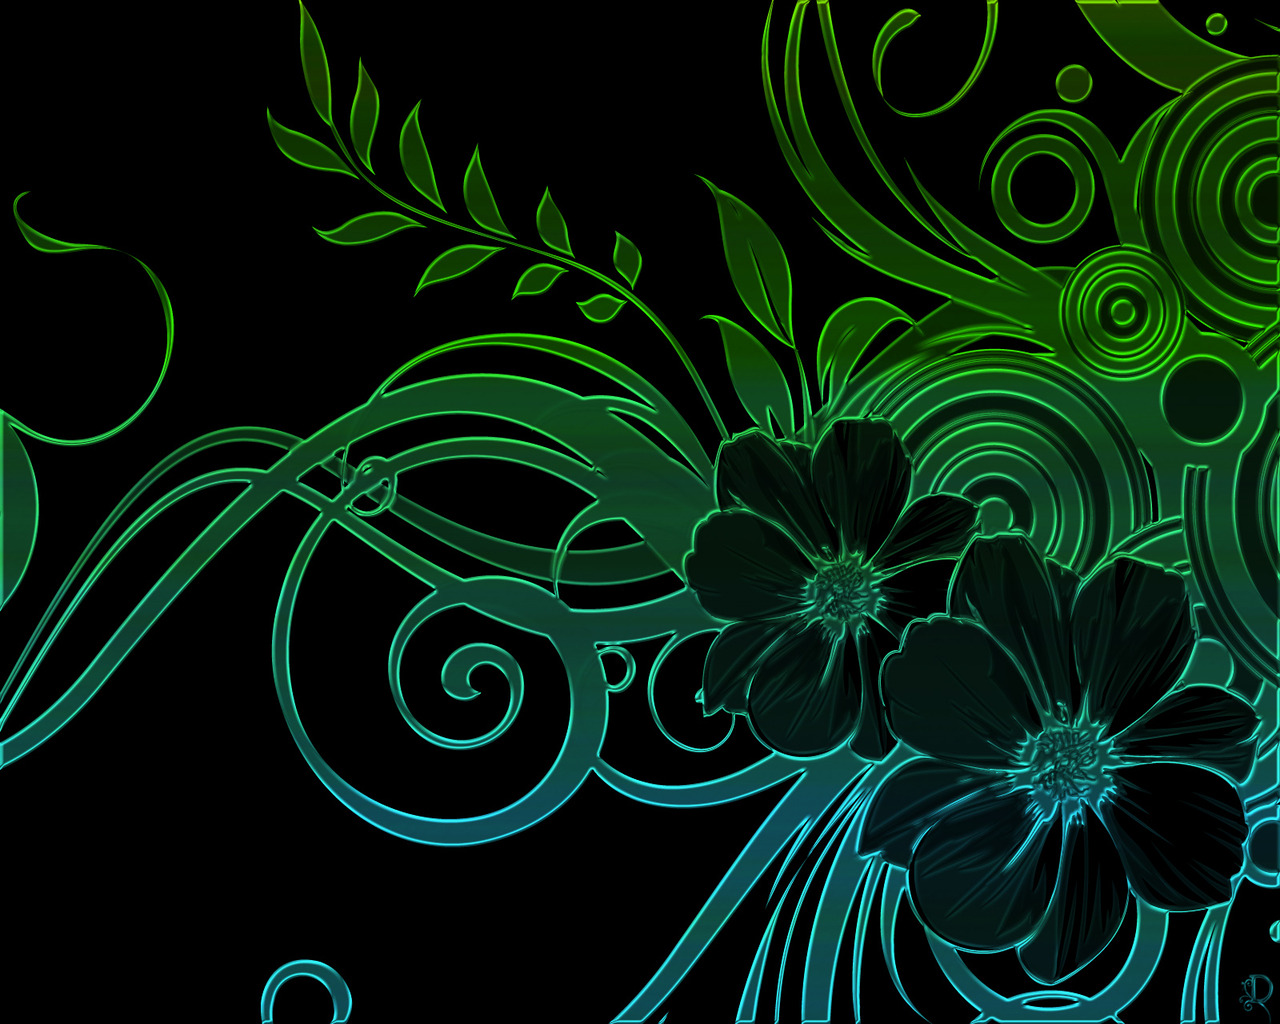 http://3.bp.blogspot.com/_Ym3du2sG3R4/TTn4pRZWdAI/AAAAAAAADJM/_fw4_RSOHUc/s1600/Abstract-Flowers-wallpaper.jpg